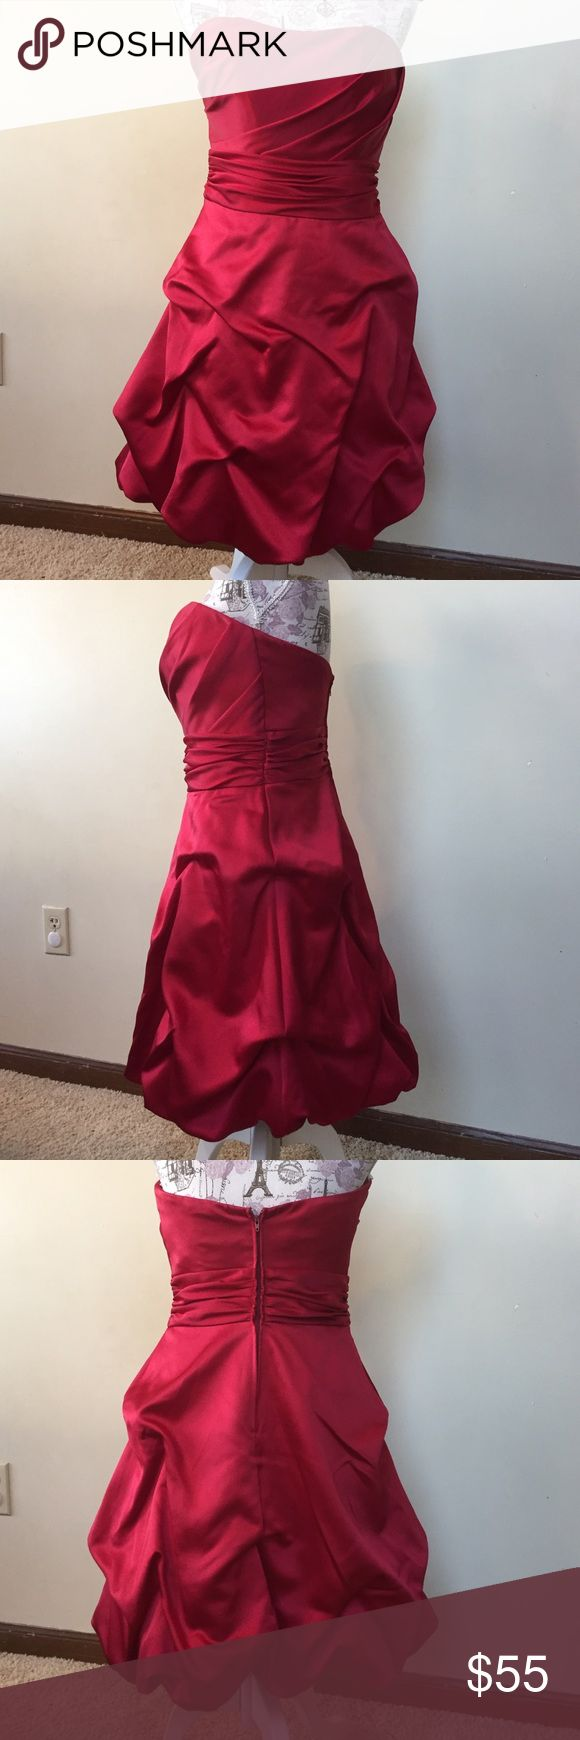 NWT Apple Red strapless party dress - gorgeous! Absolutely gorgeous shade of red dress!  Perfect for New Years Eve!   Size 4 David's Bridal Dresses Strapless